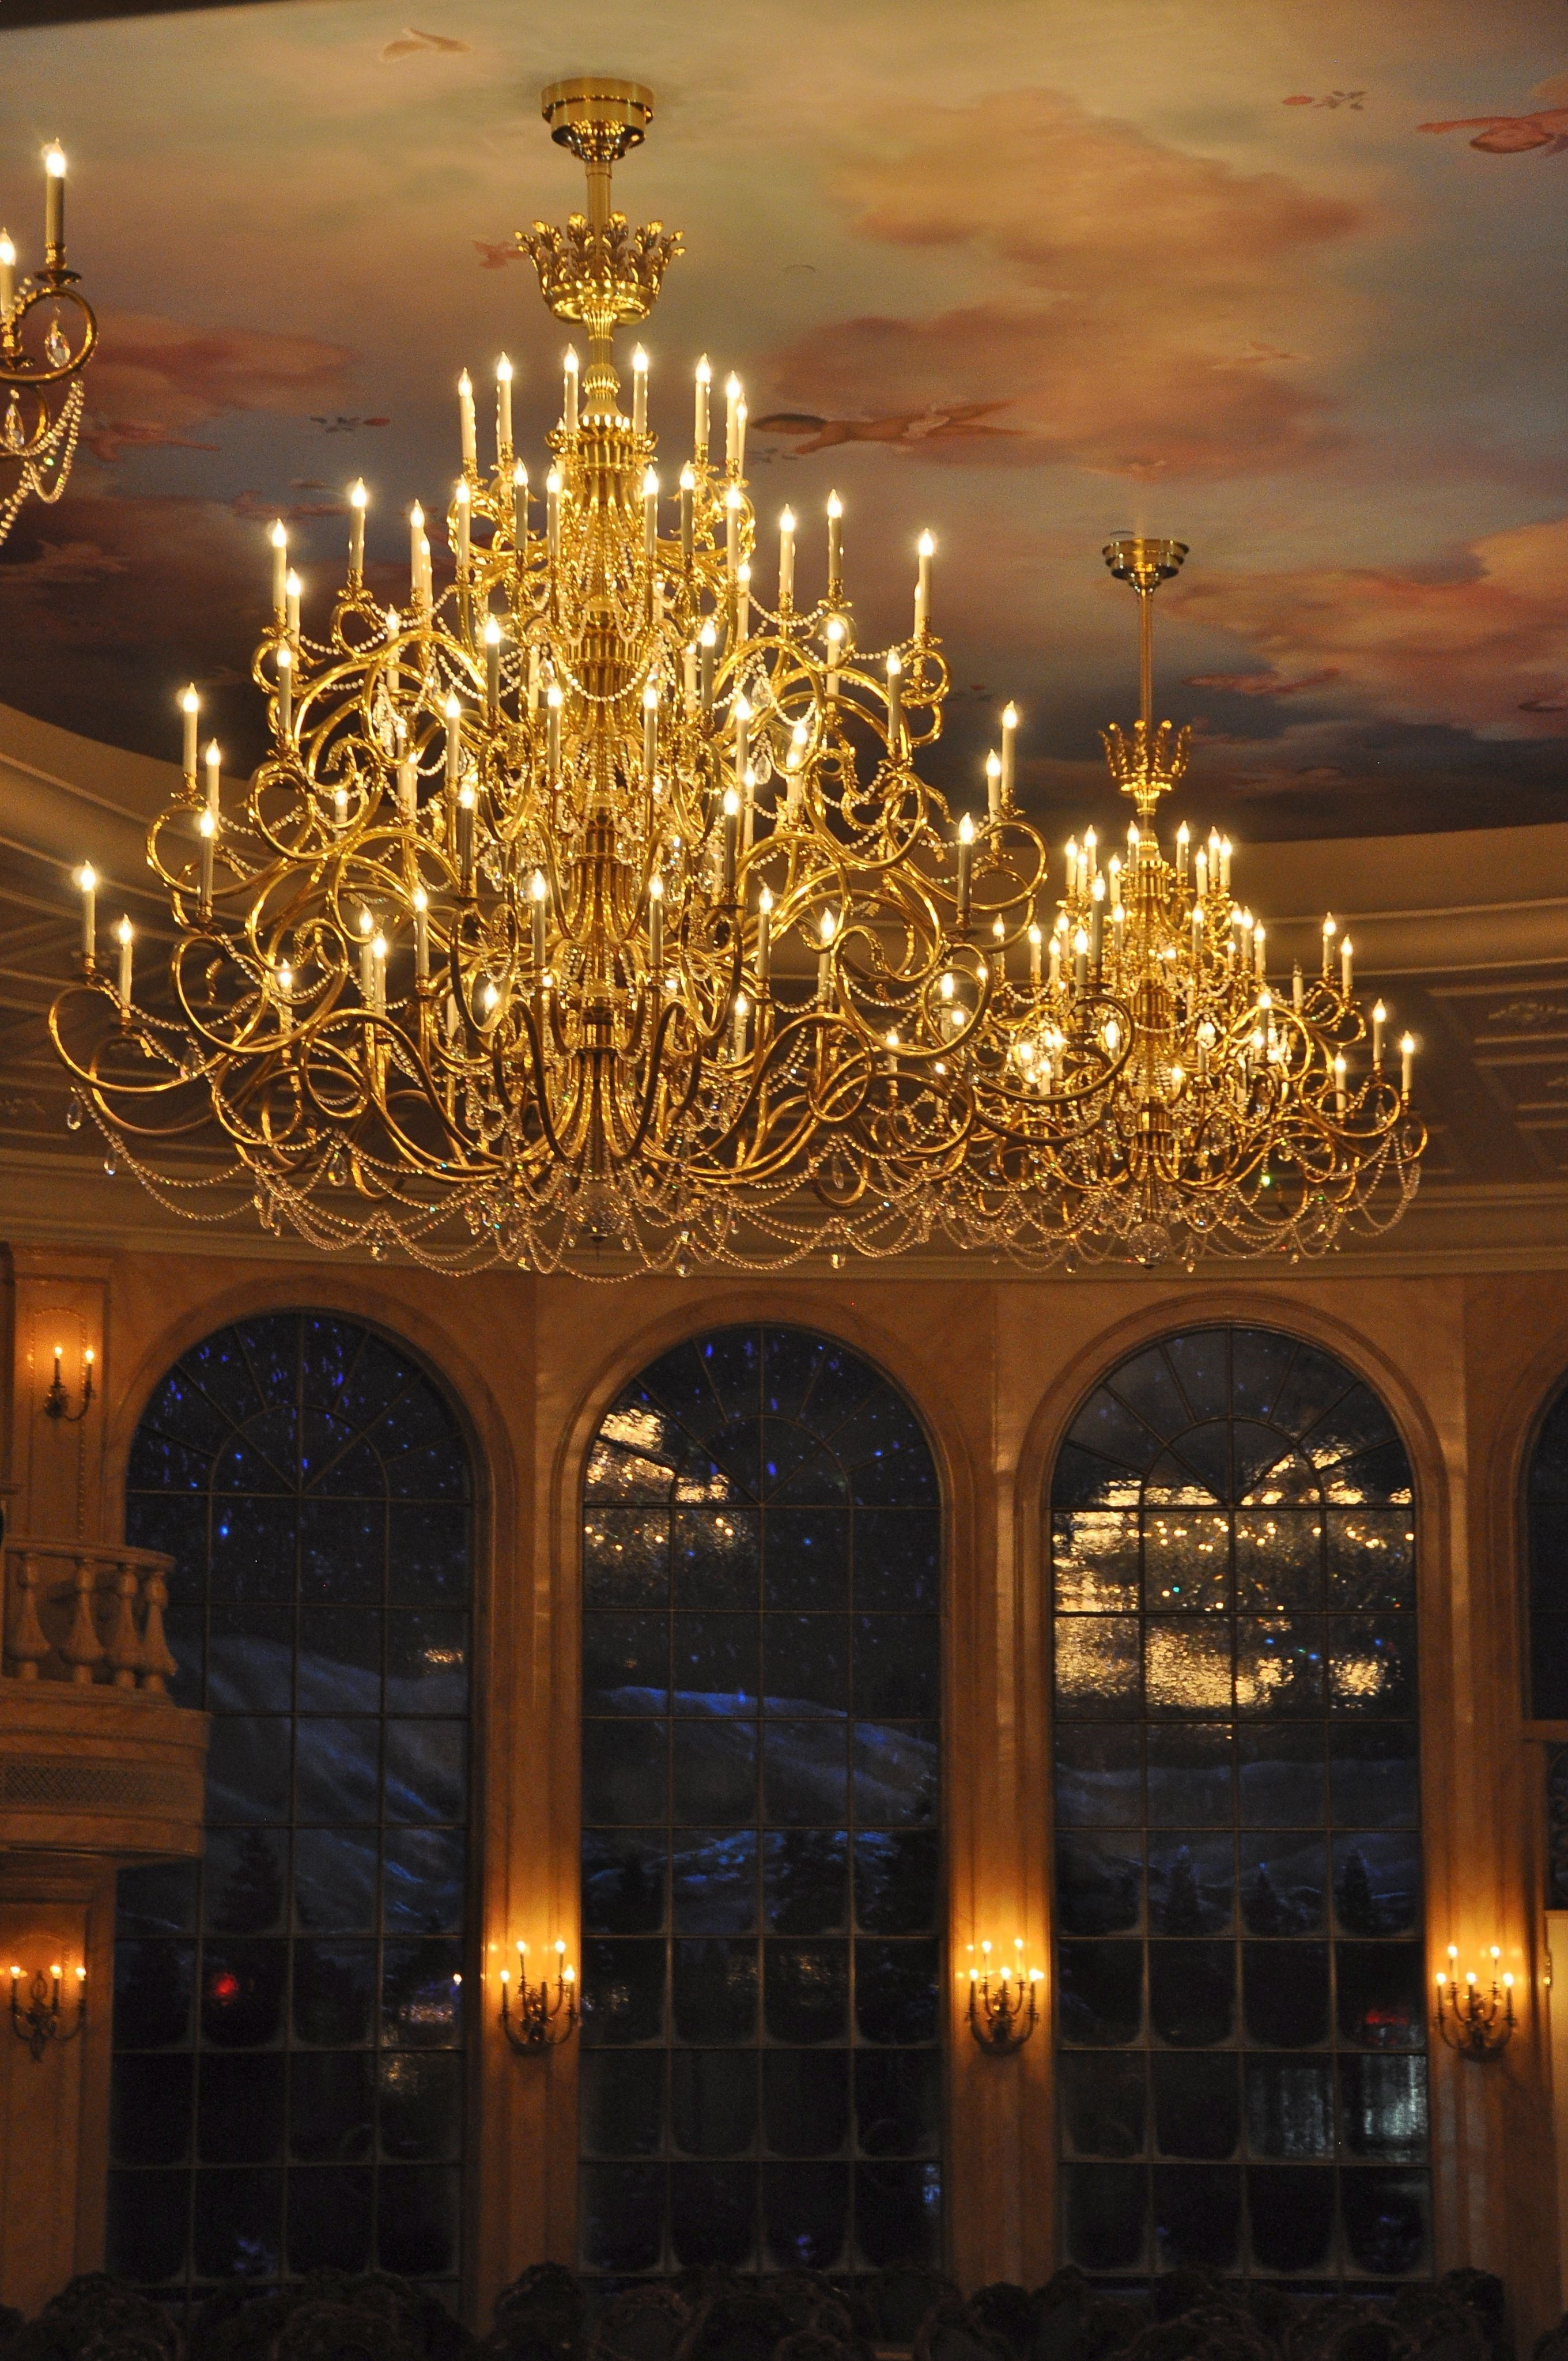 Its Real The Chandelier Is Real Now Where To Find It And How To Get It In My House Anybody Wa Disney Beauty And The Beast Beauty And The Beast Chandelier